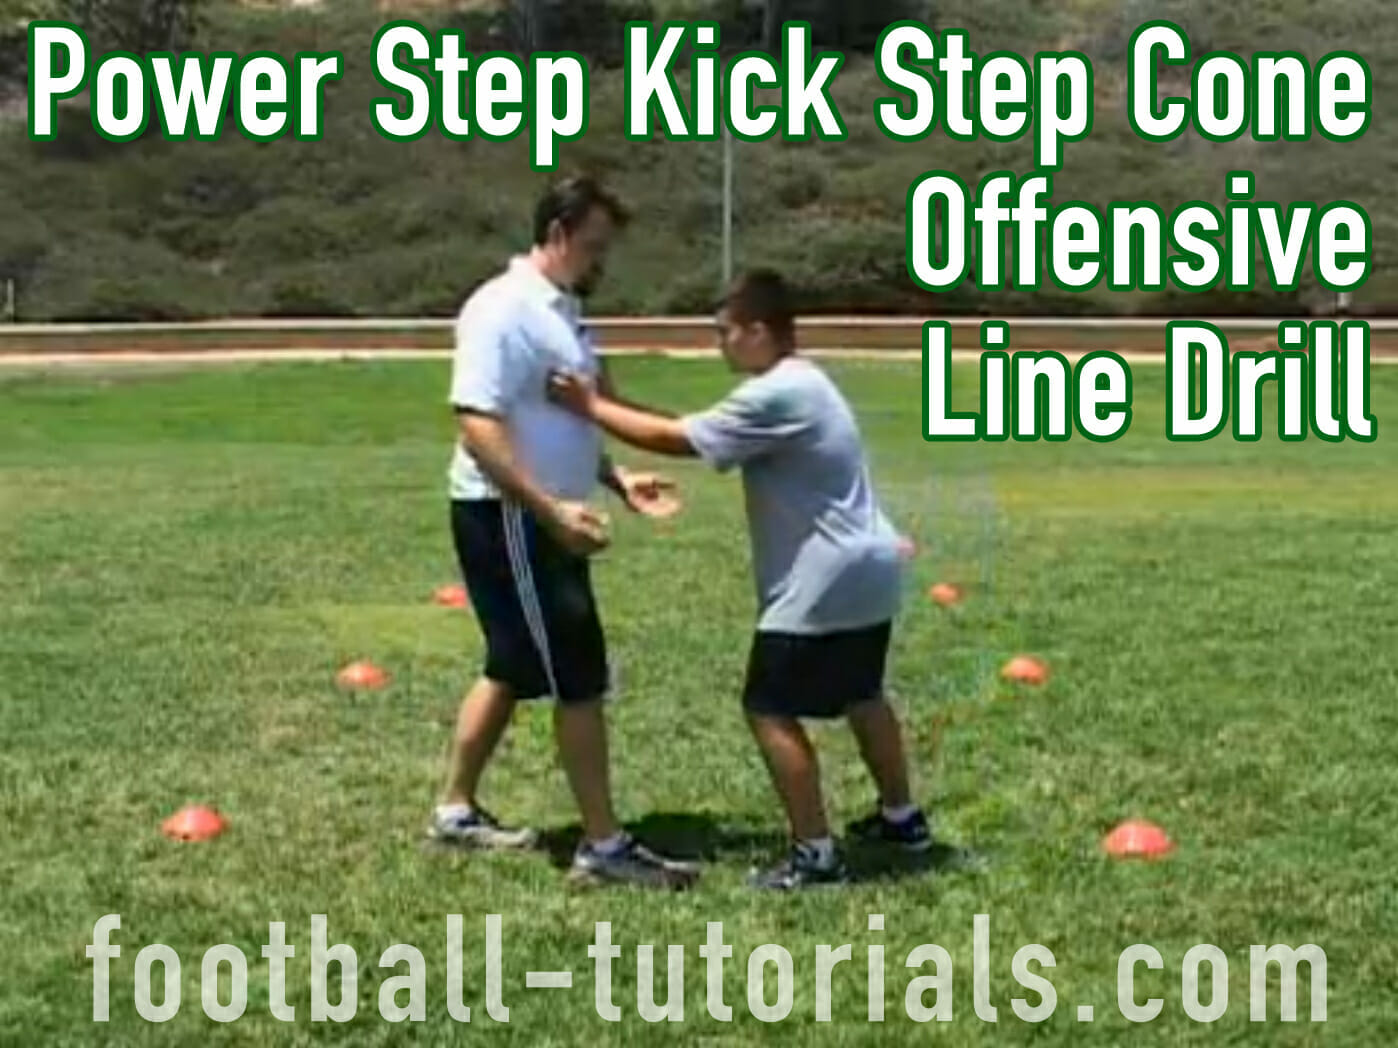 offensive line drill